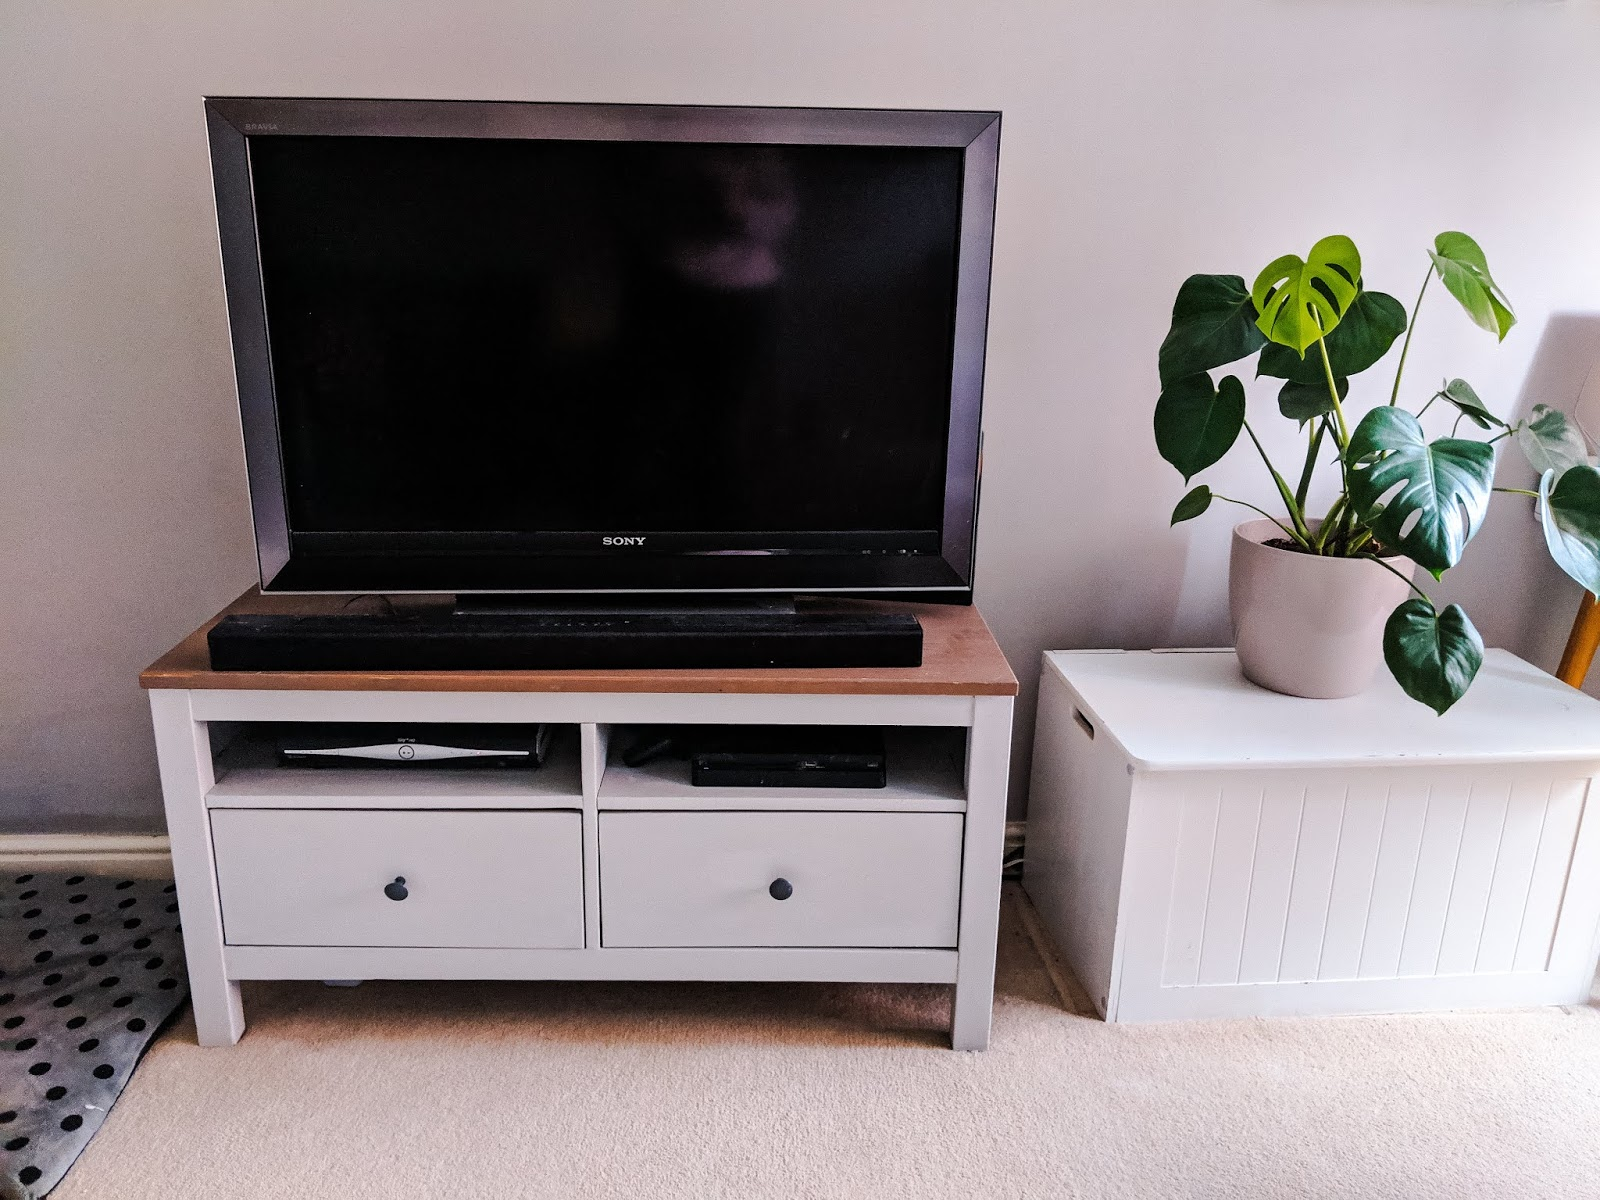 Upcycling Ikea Furniture With Rust Oleum Review K Elizabeth